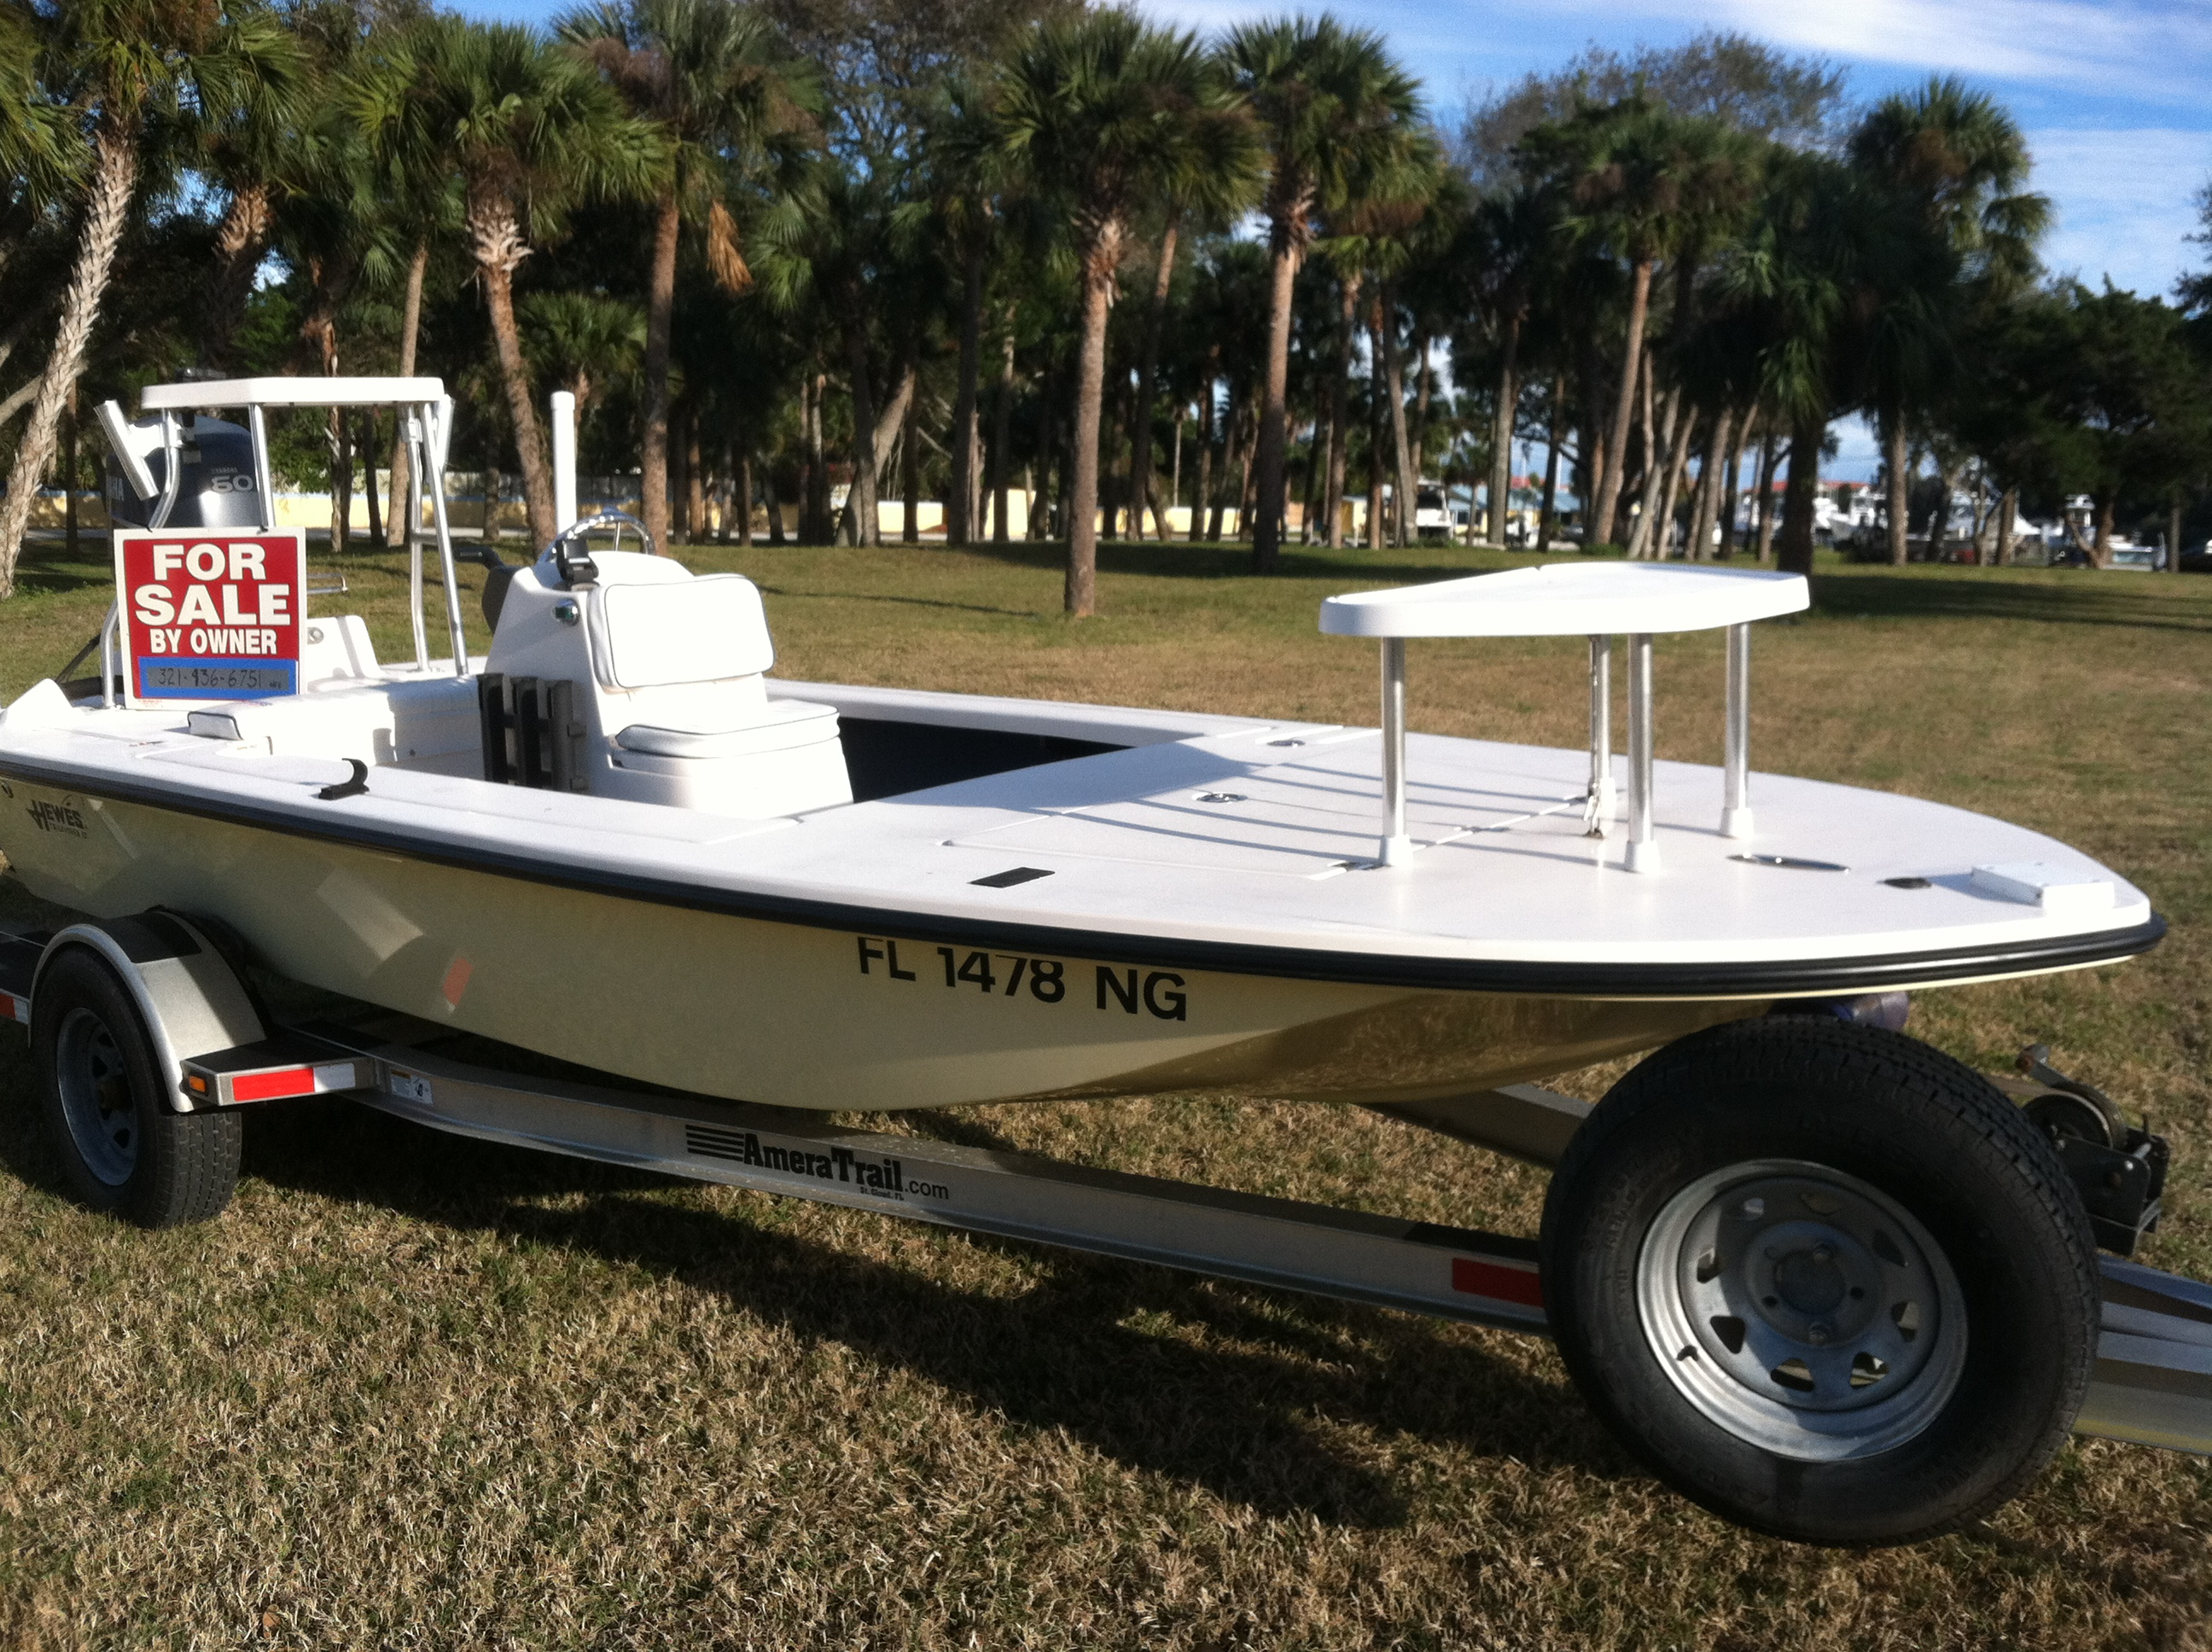 Aluminum Boats For Sale: Hewes Aluminum Boats For Sale